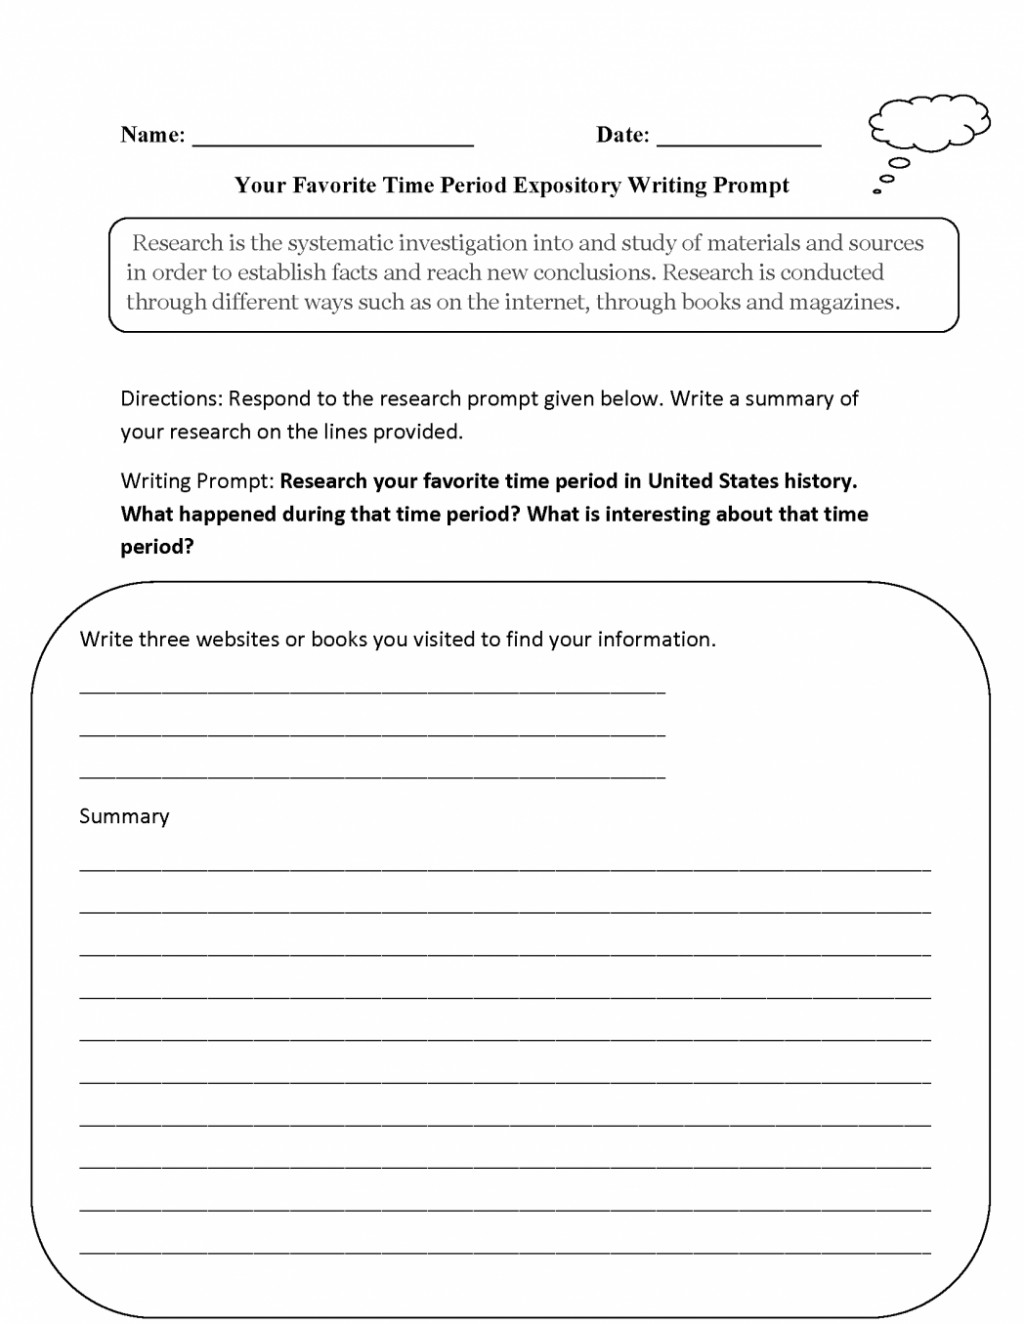 018 Essay Example Good Informative Topics Prompts Favorite Time Period Expository Writing P To Write An On The Topic Of Immigration Remarkable For Secondary School 4th Grade 5th Large